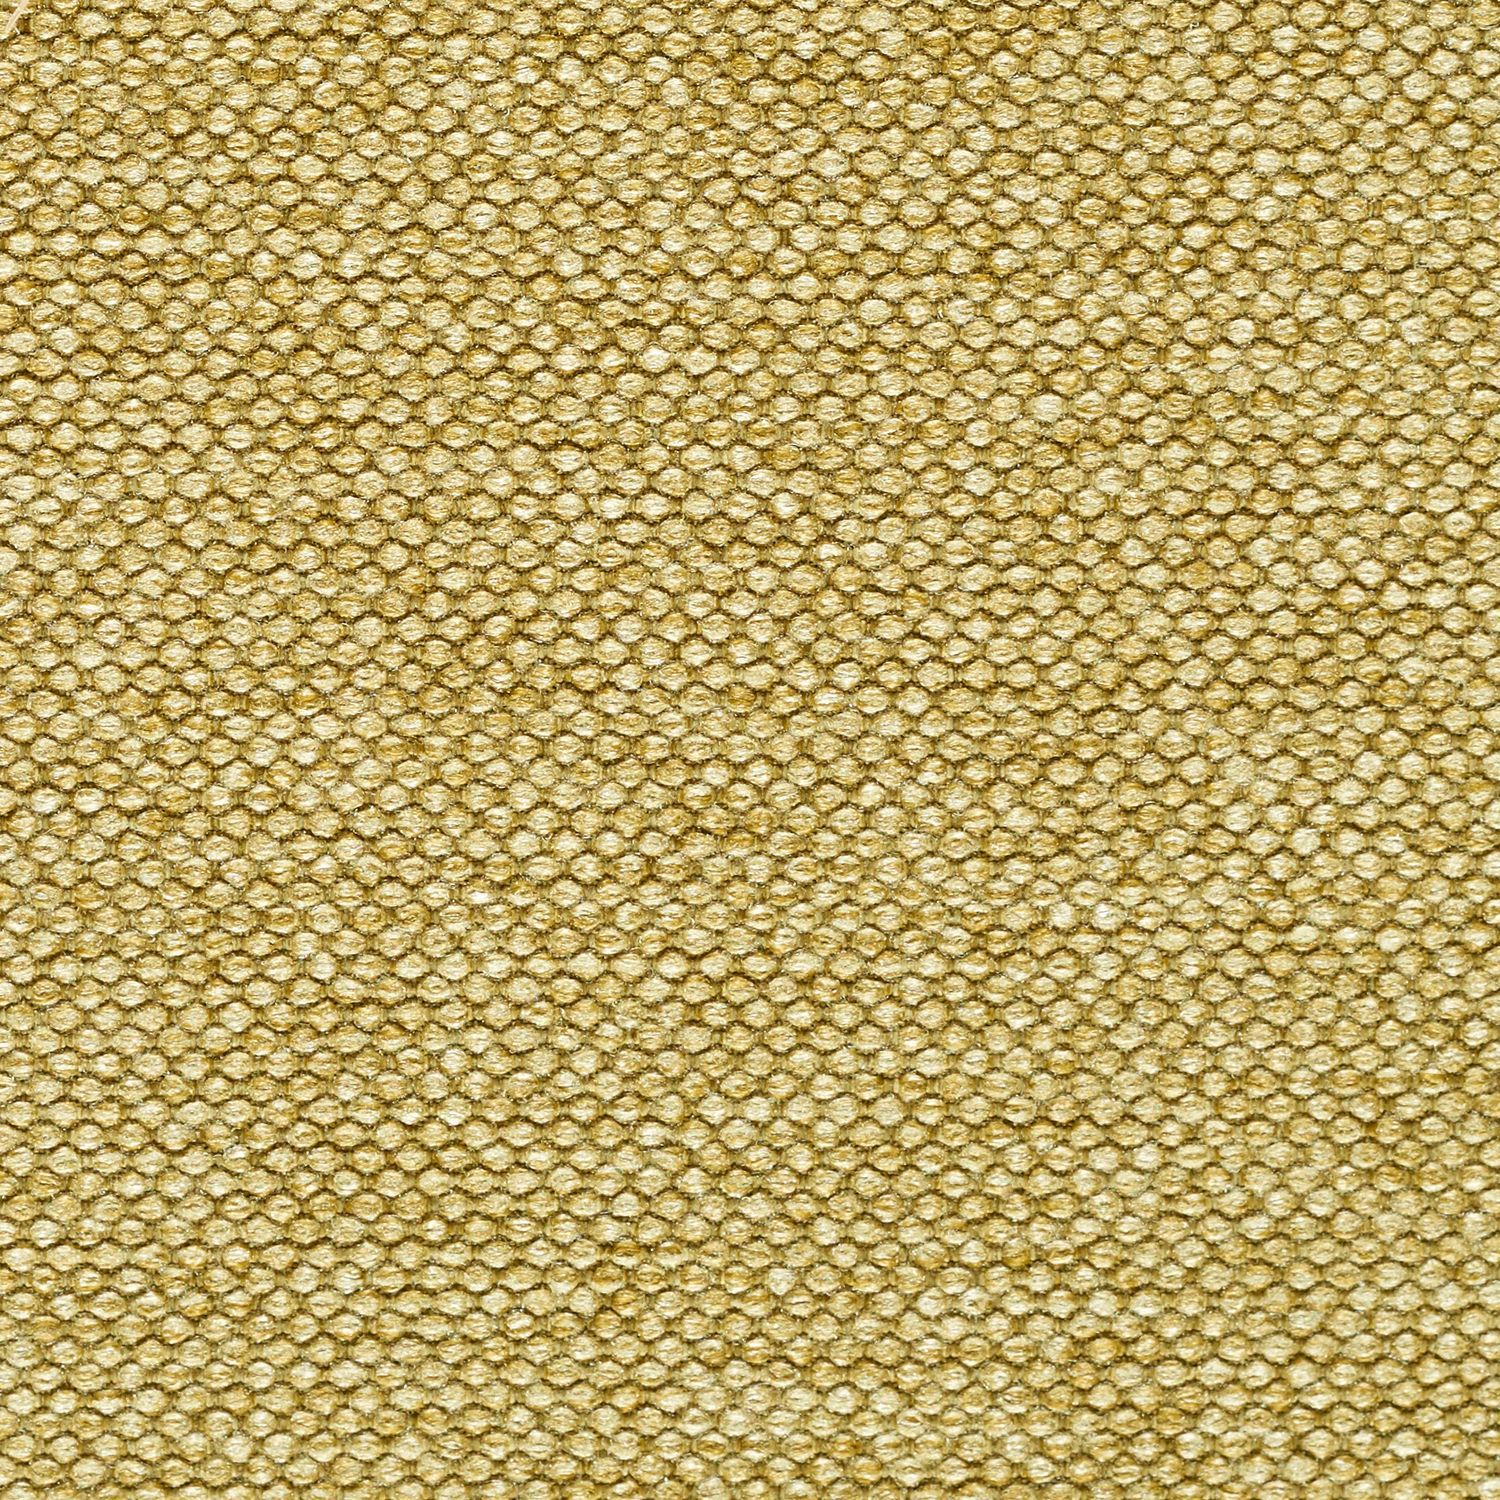 Low-D320_Meadow-Tweed